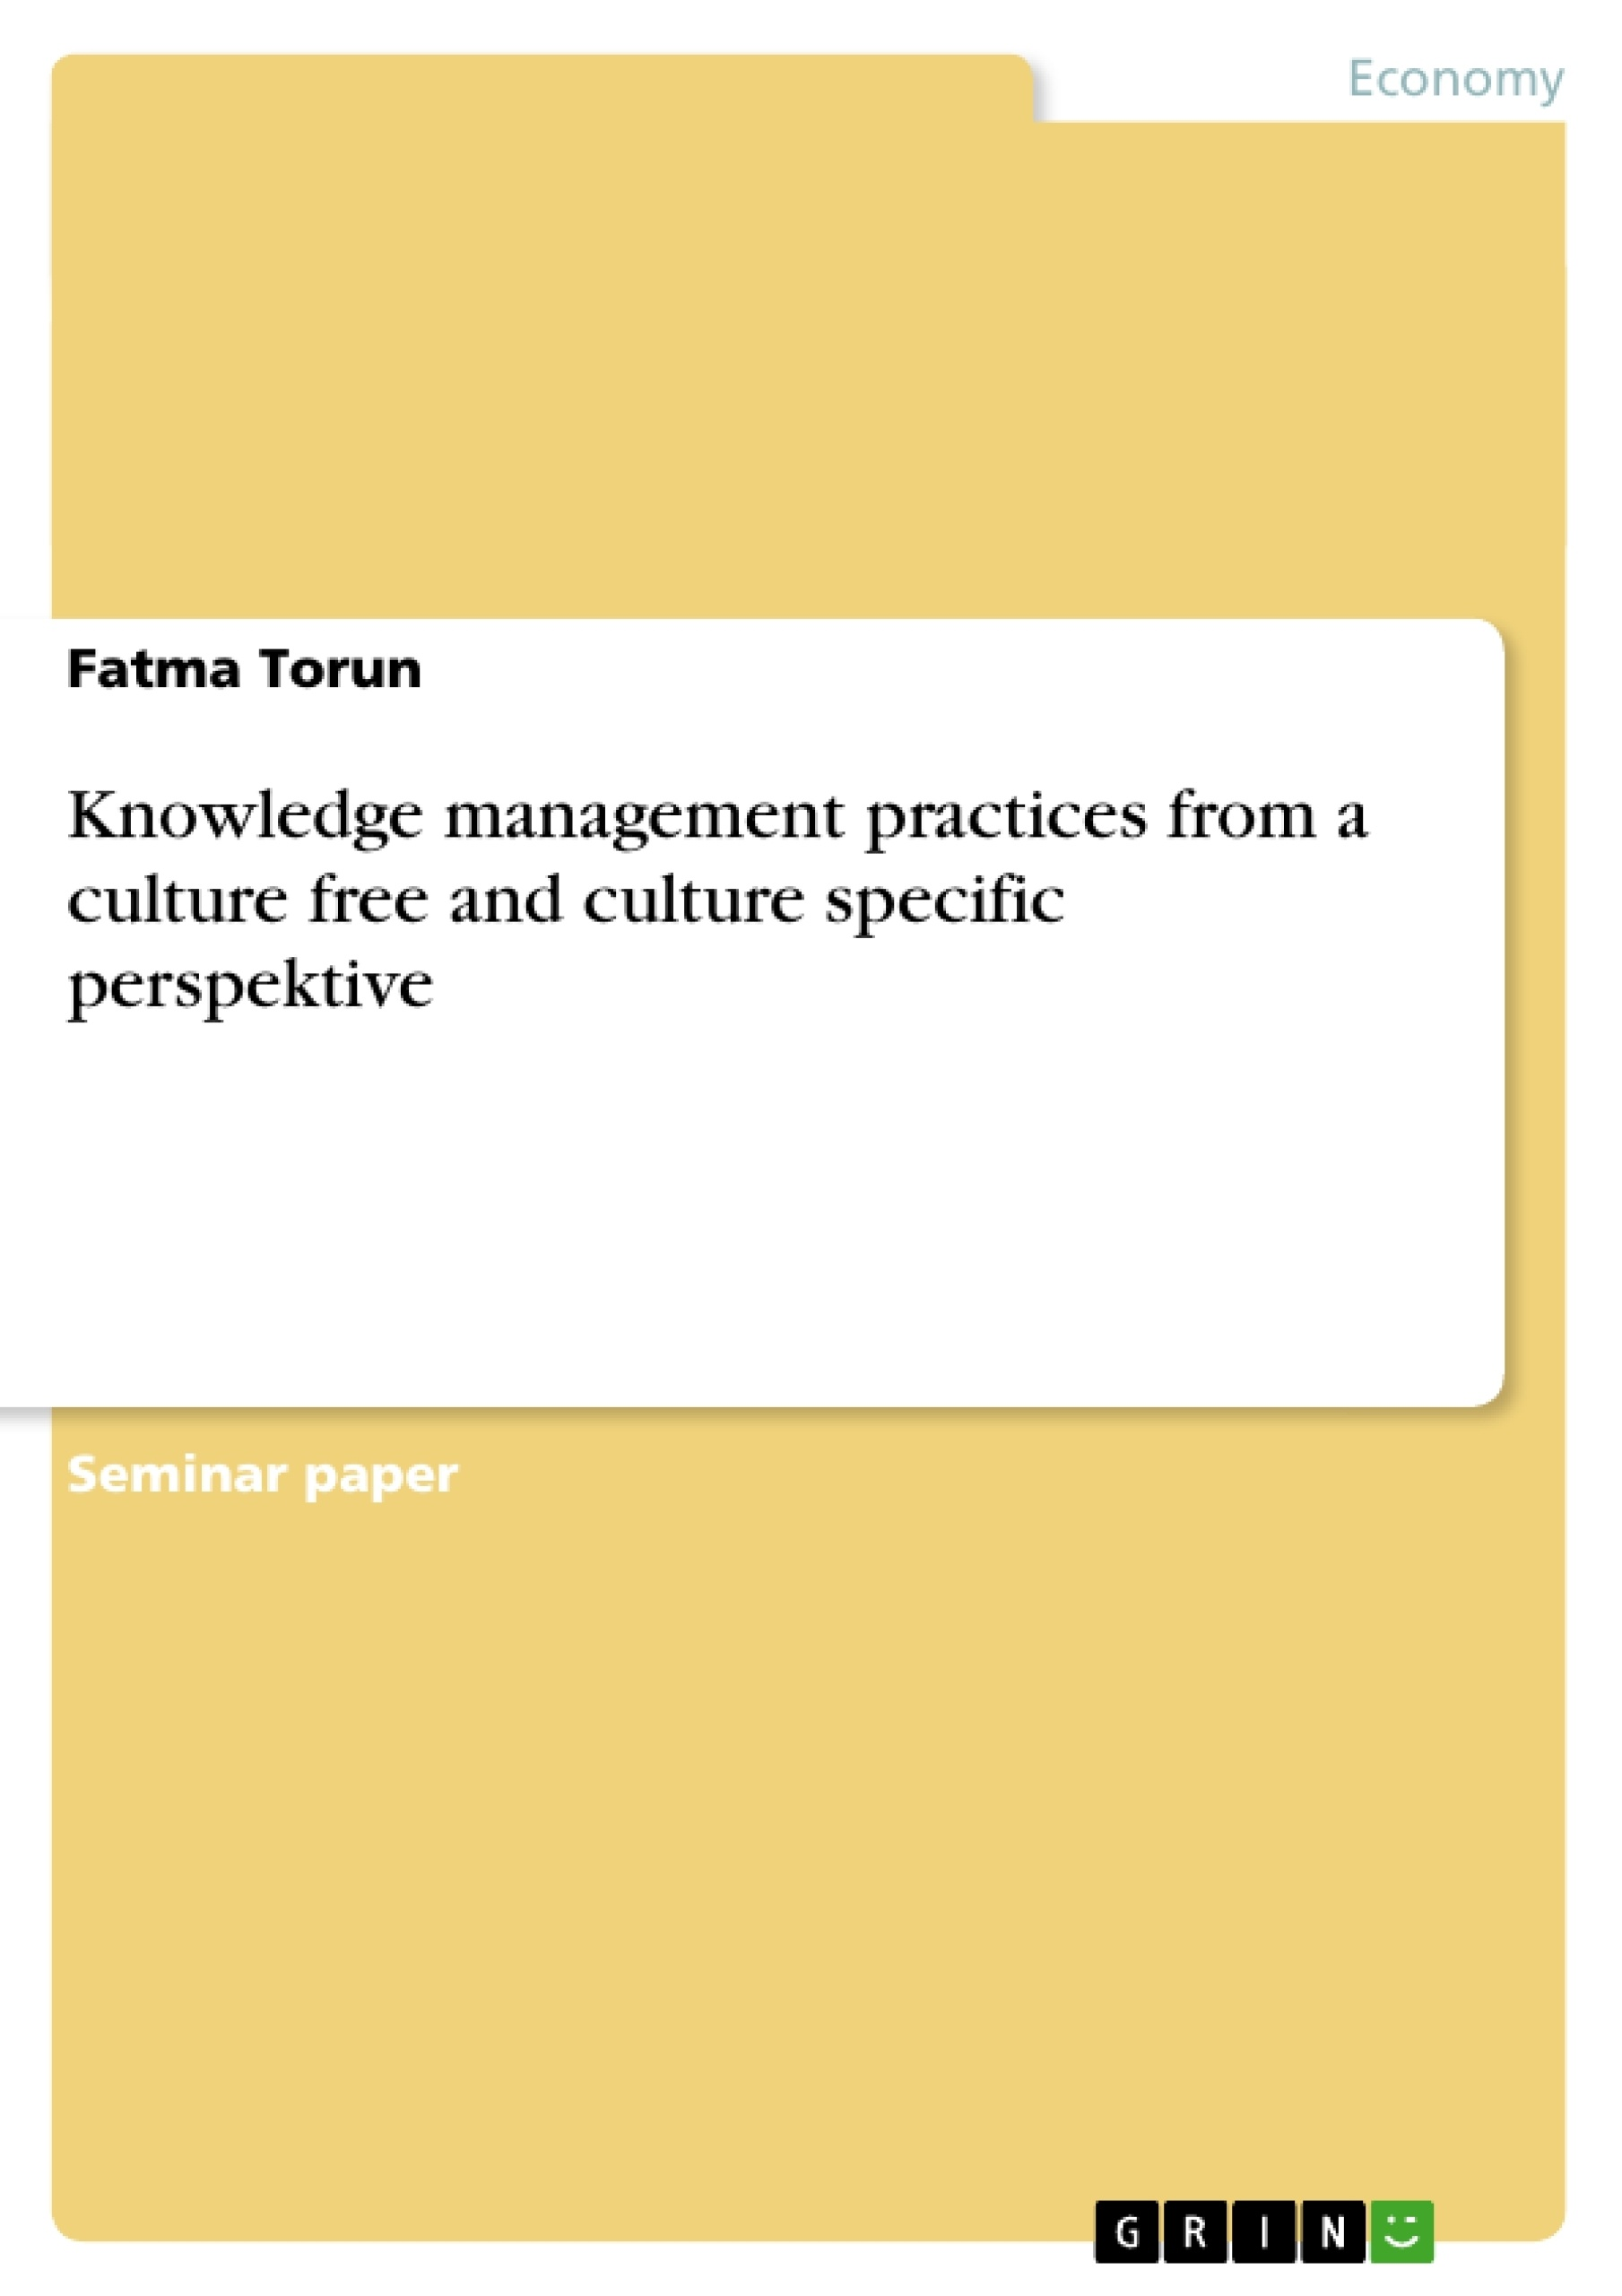 Title: Knowledge management practices from a culture free and culture specific perspektive